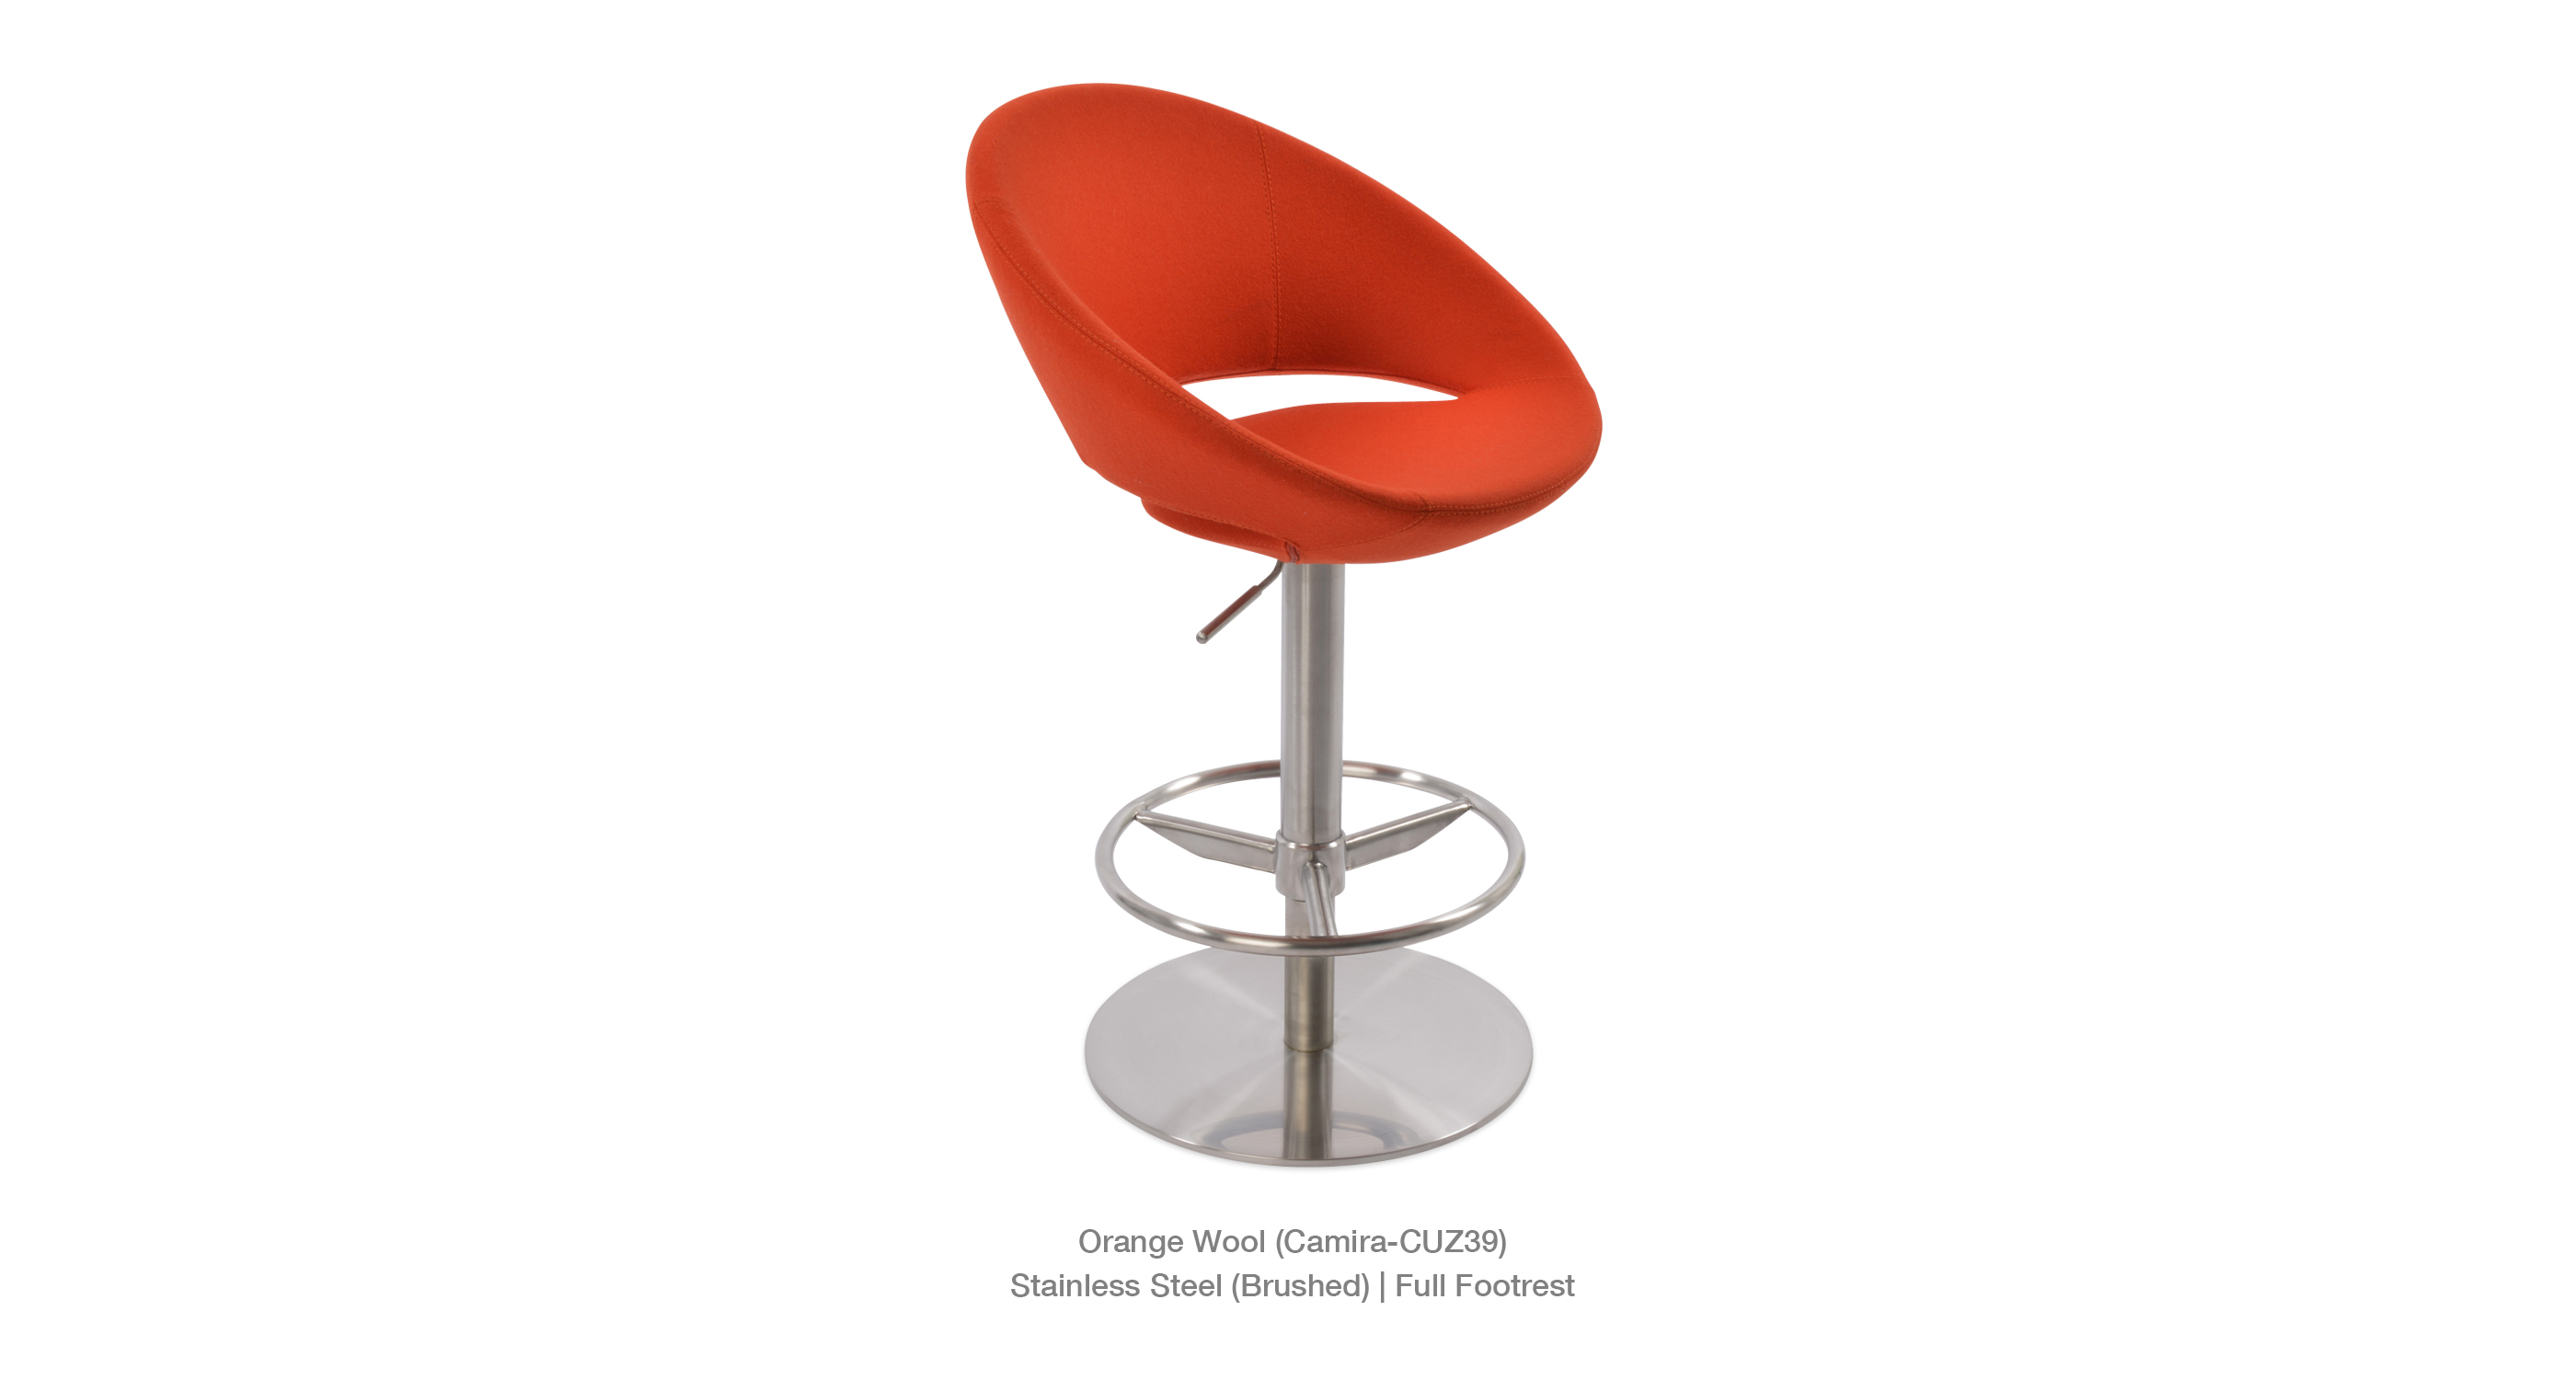 Crescent Piston Orange Wool Camira